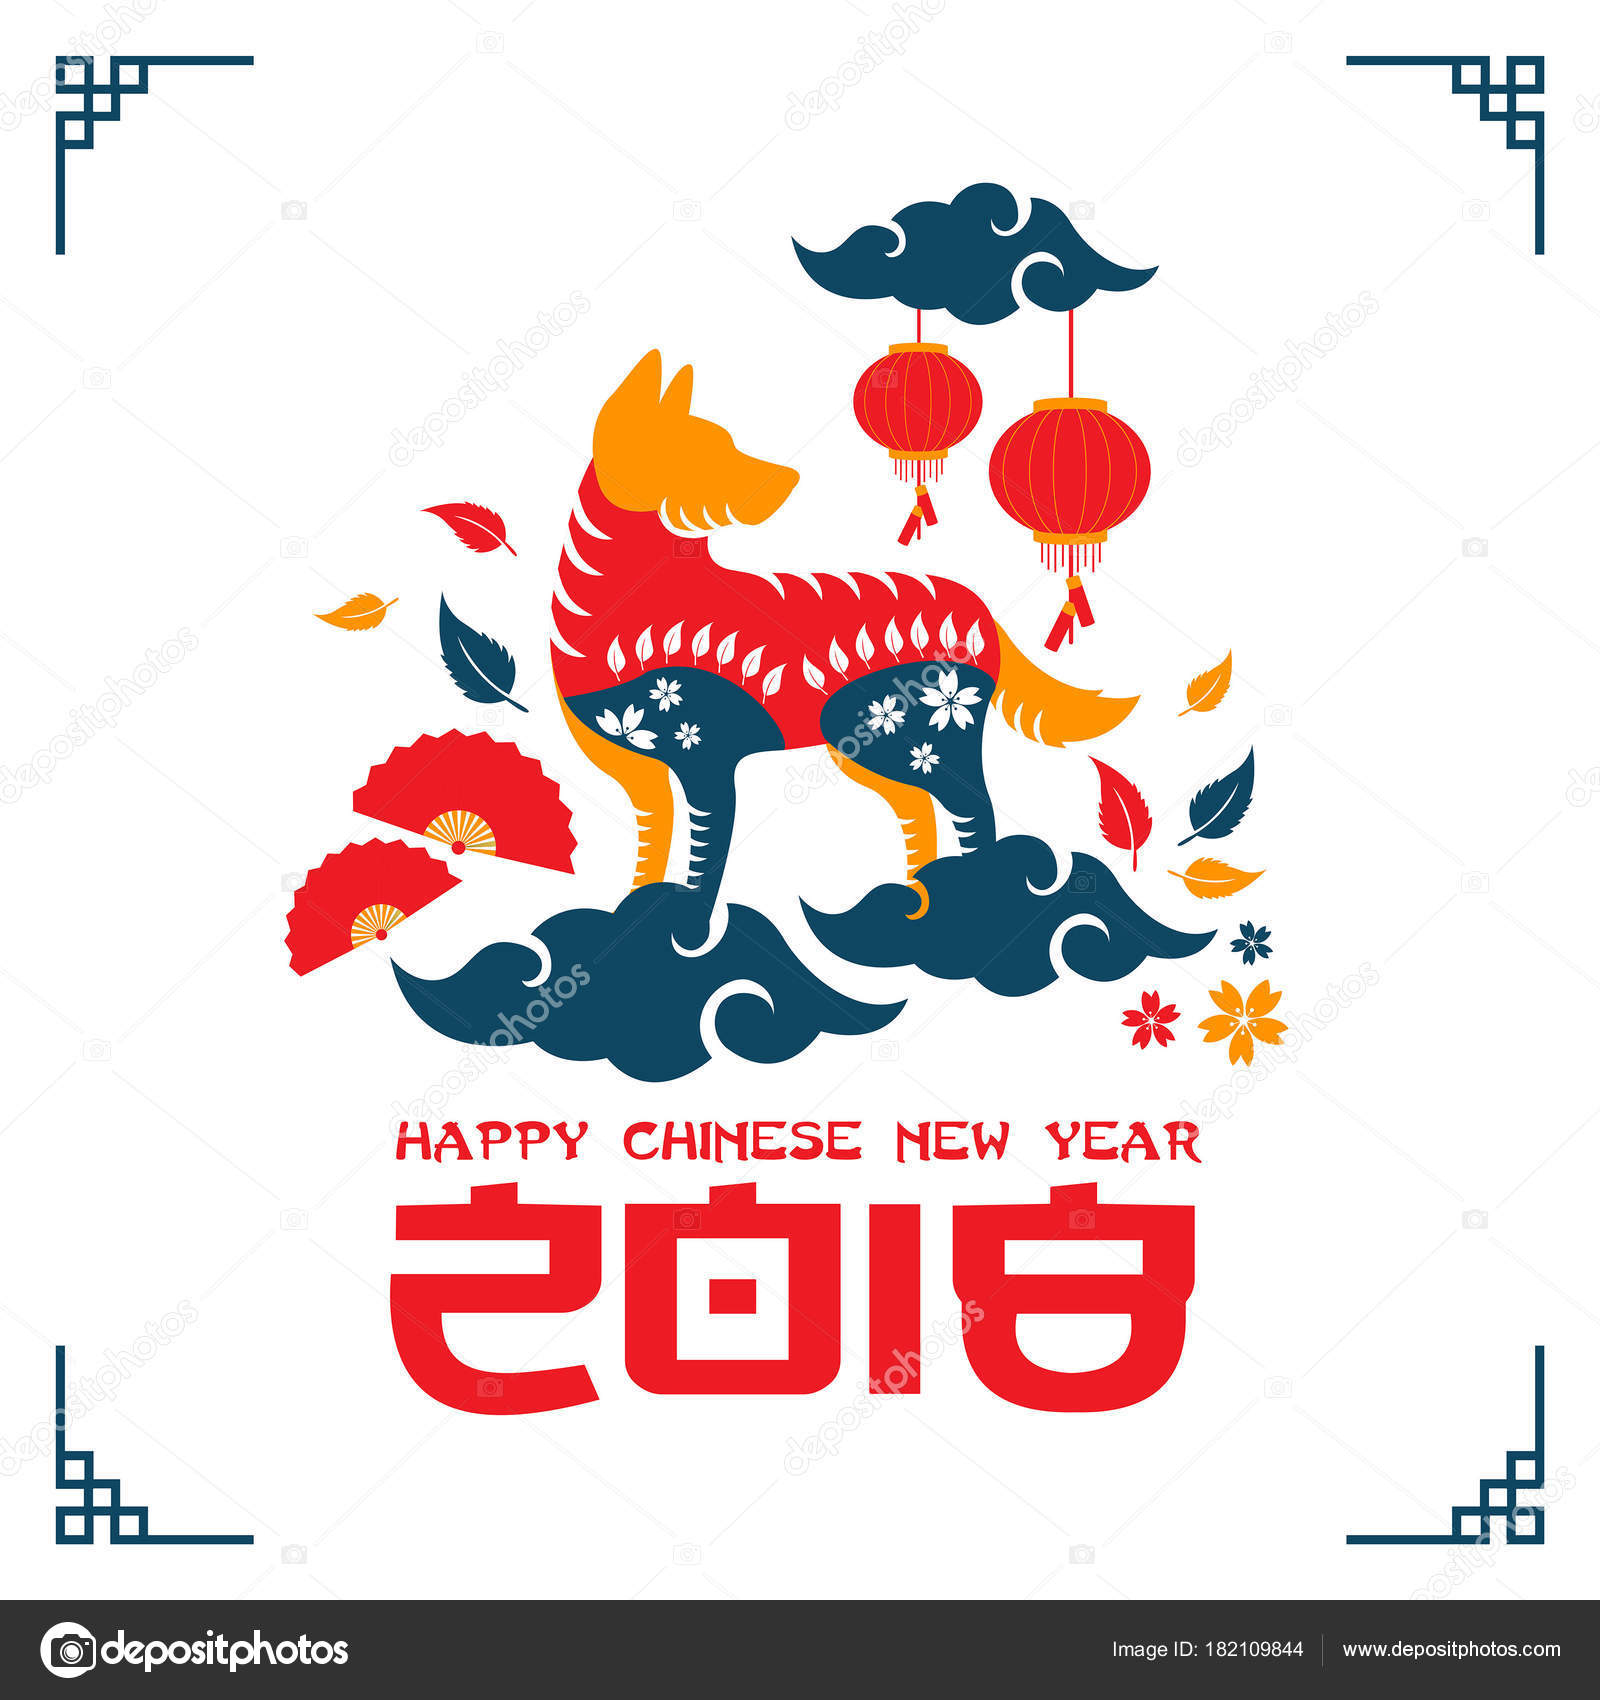 colorful chinese new year 2018 dog year banner and card design suitable for social media banner flyer card party invitation and other chinese new year